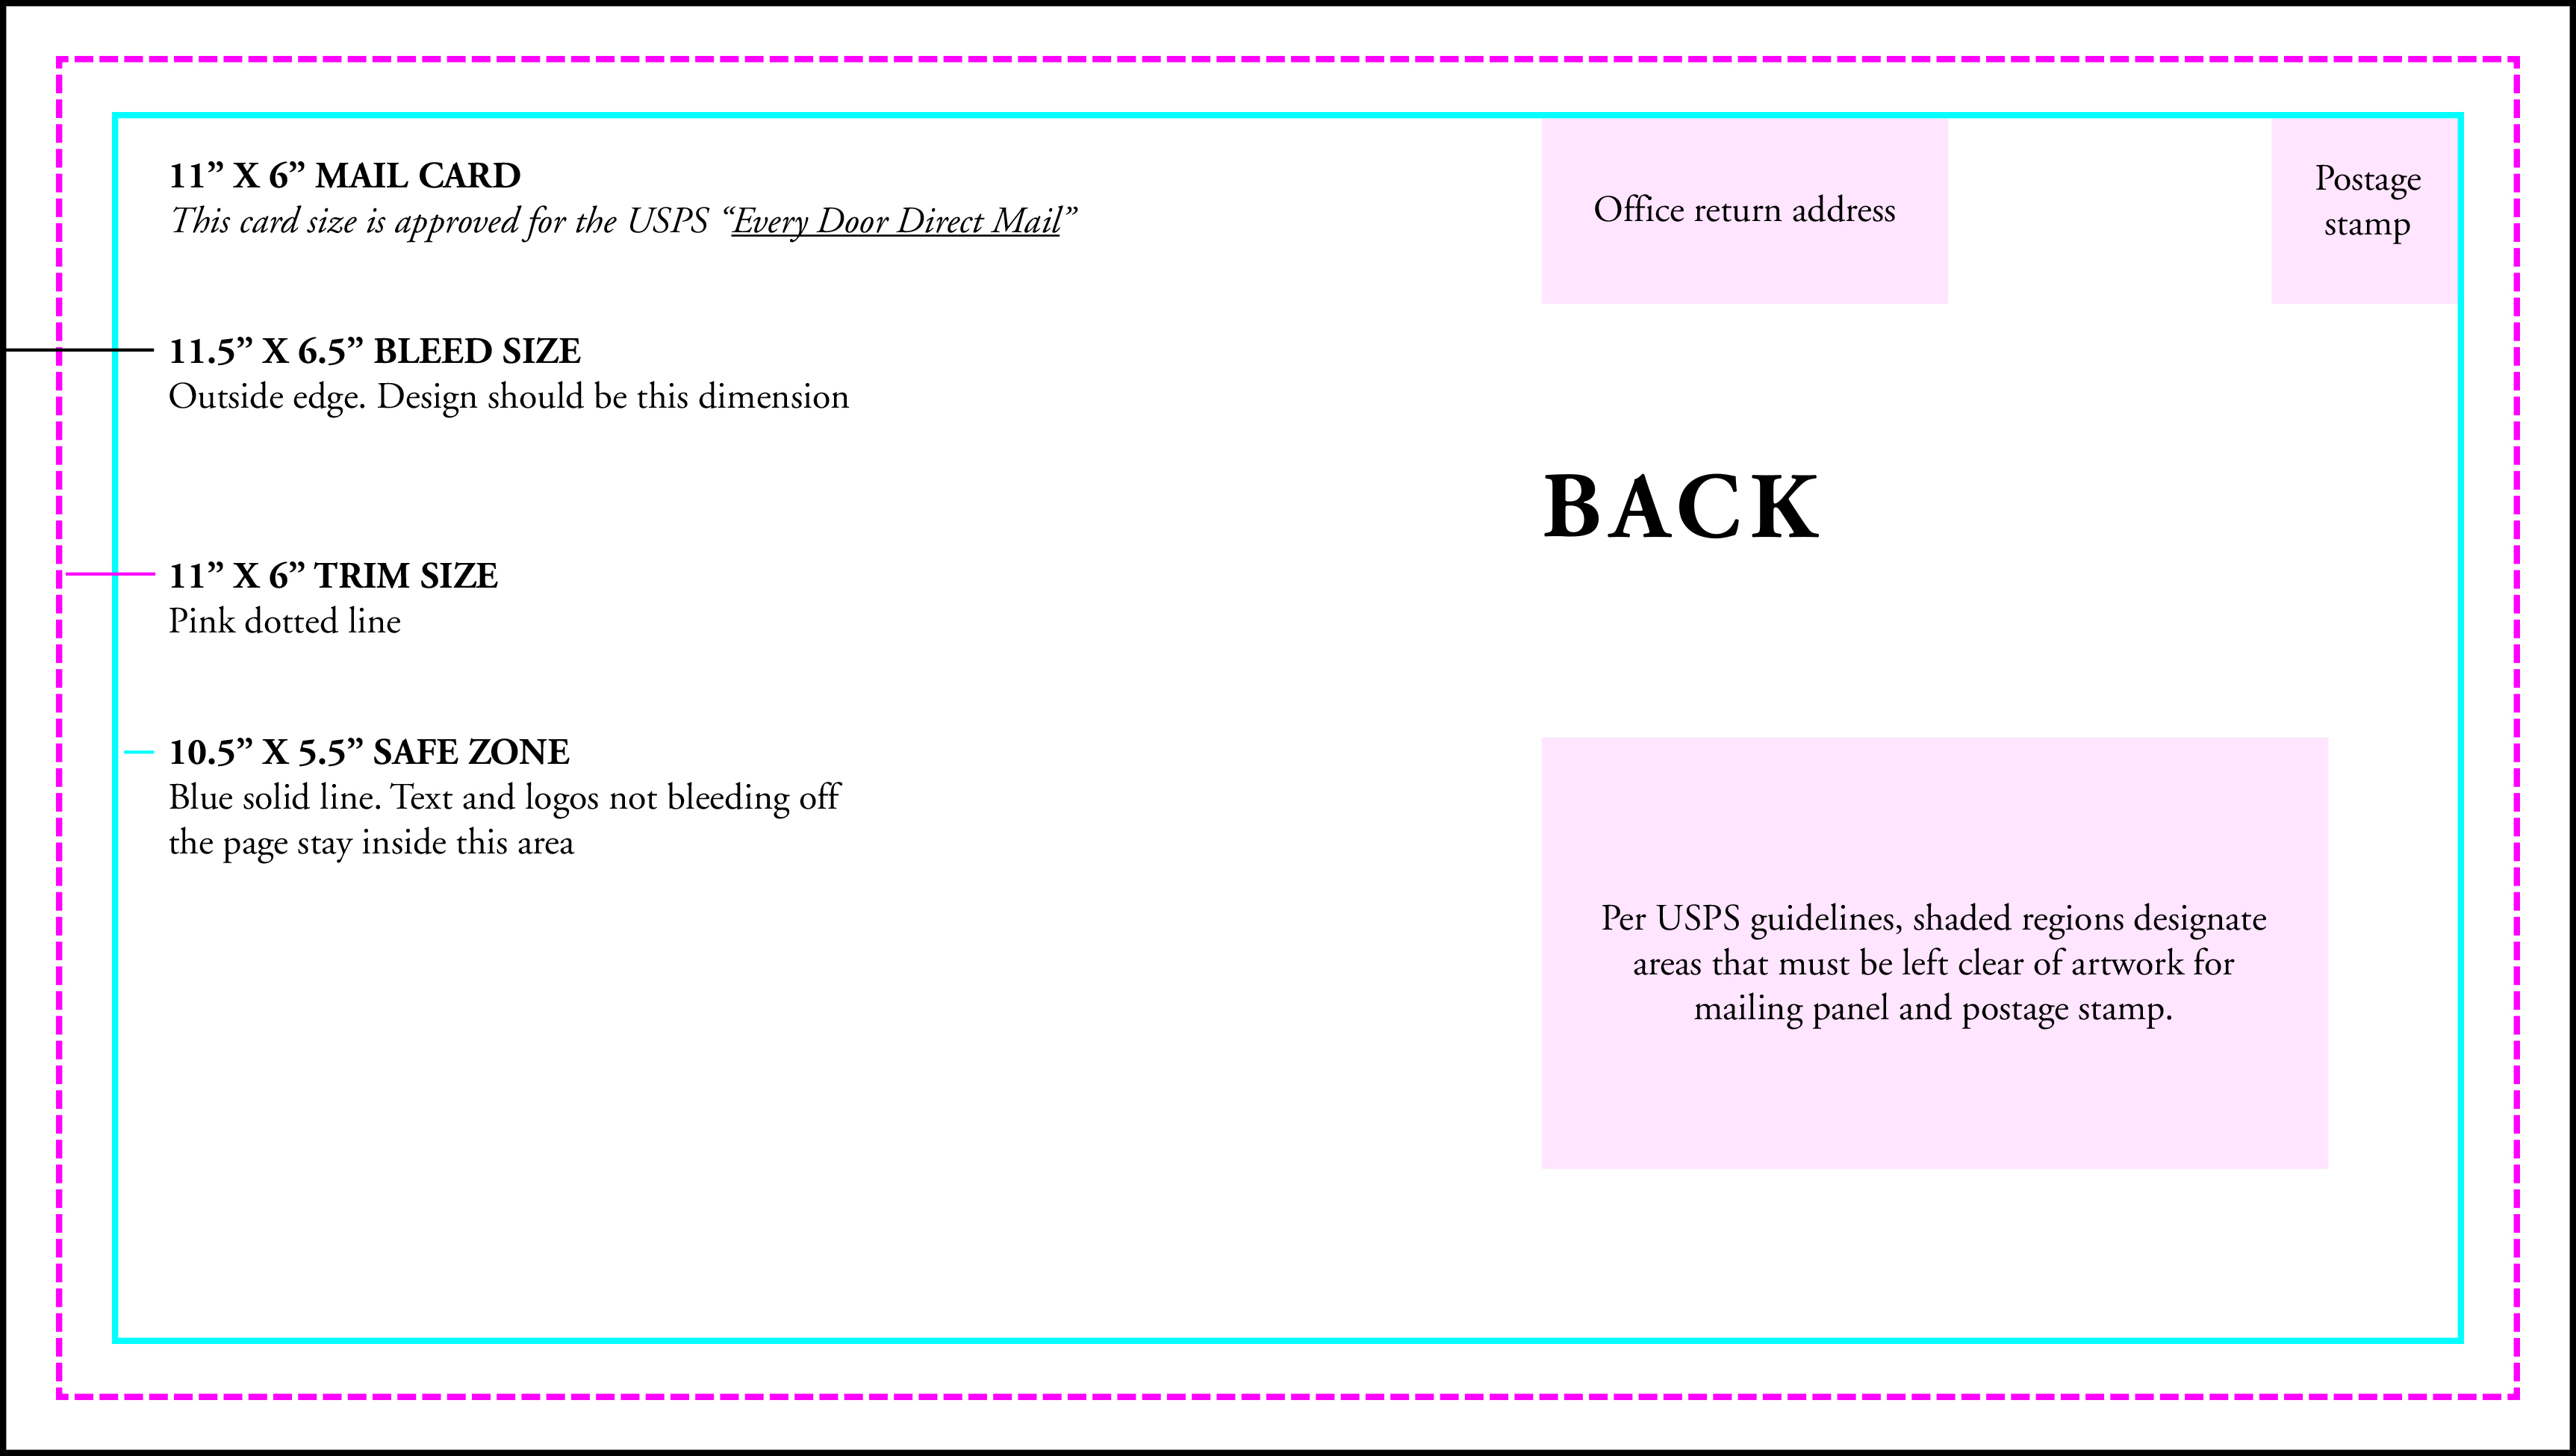 6x11 Direct Mail Card Design Layout